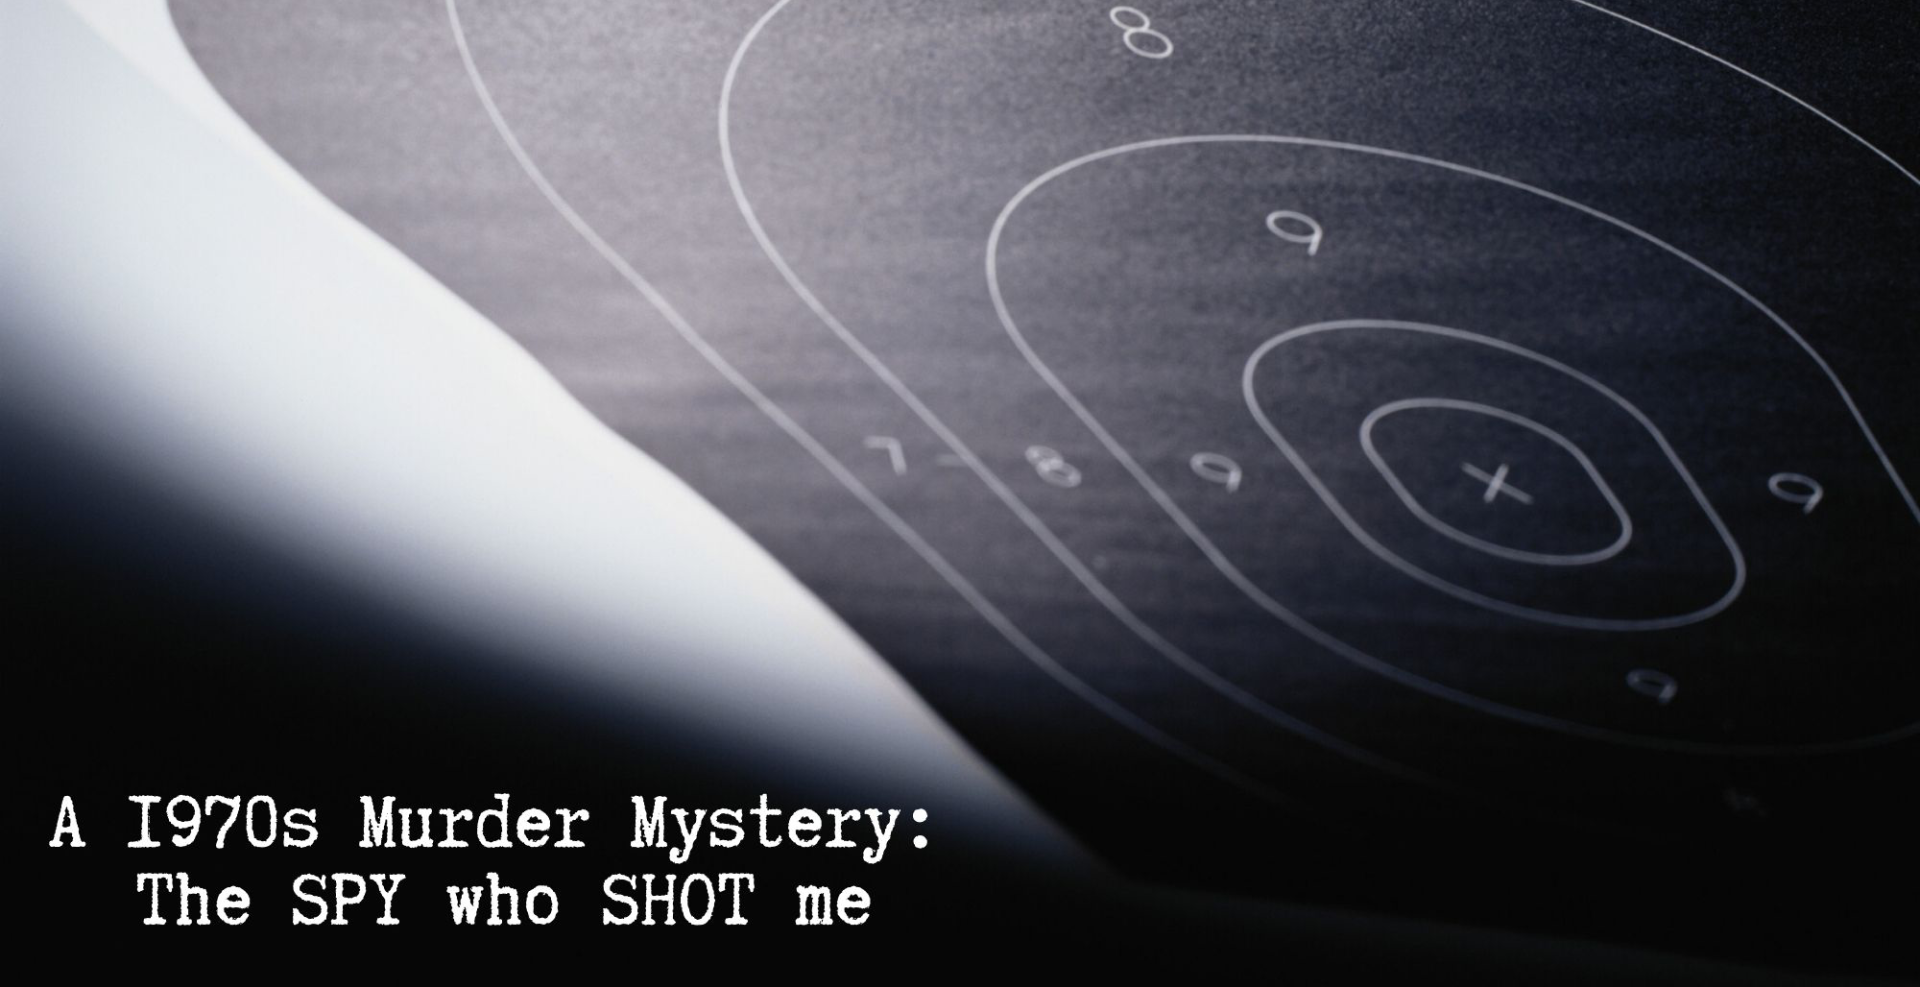 A 1970s Murder Mystery: The SPY who SHOT me